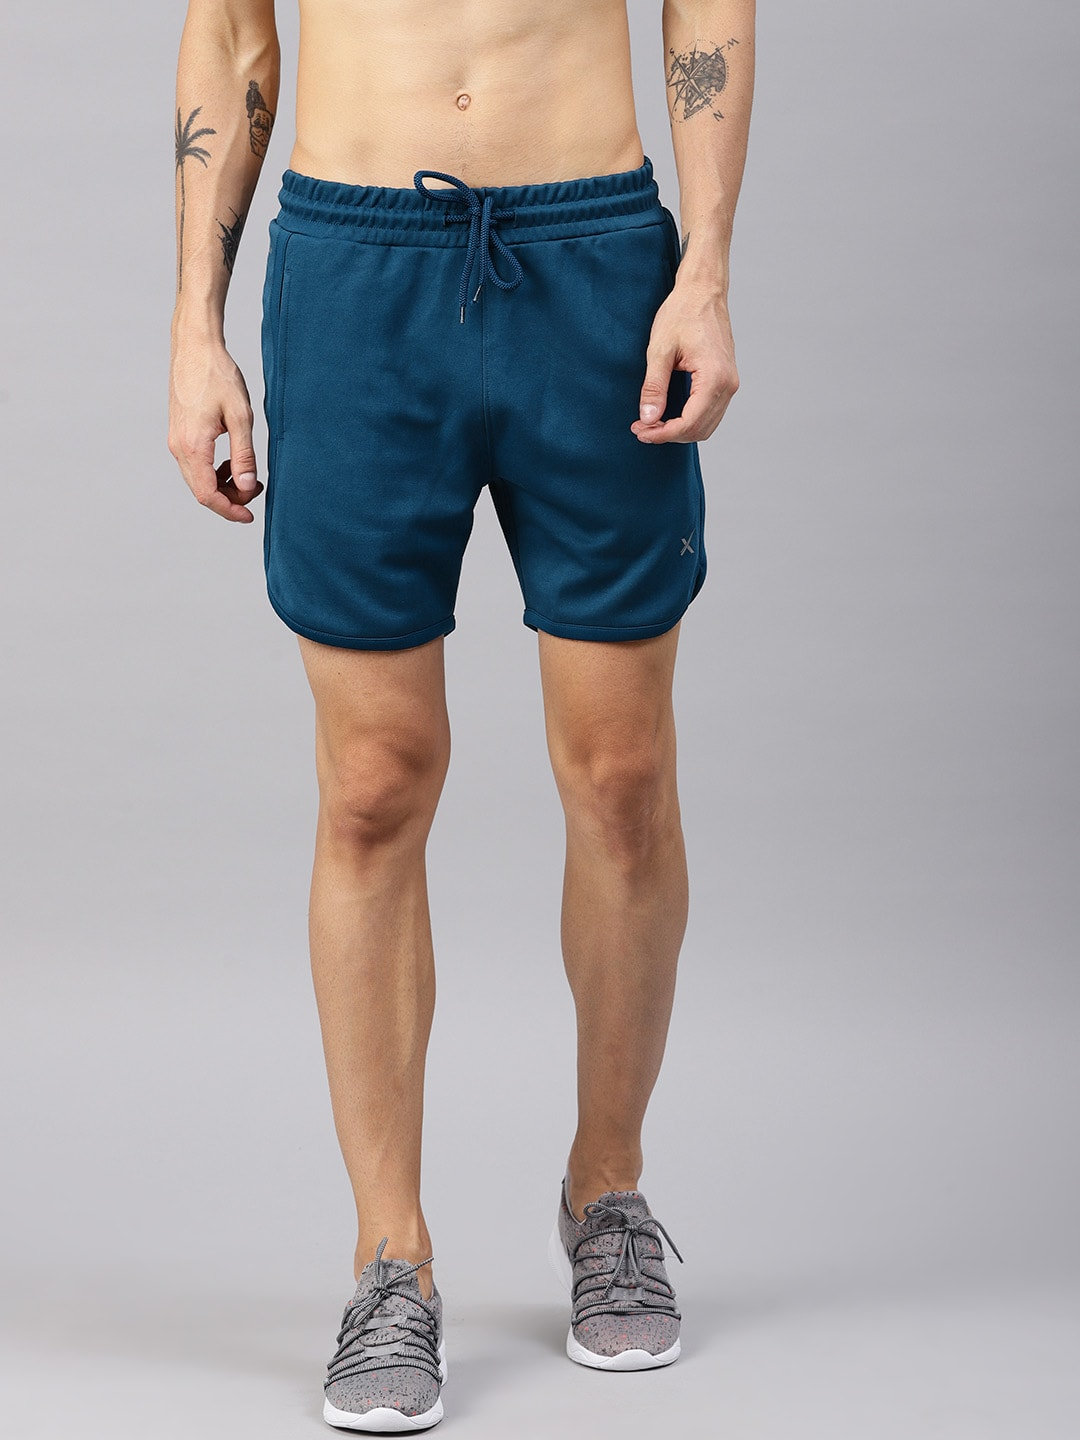 cceecdd63891 Men Shorts - Buy Shorts   Capris for Men Online in India